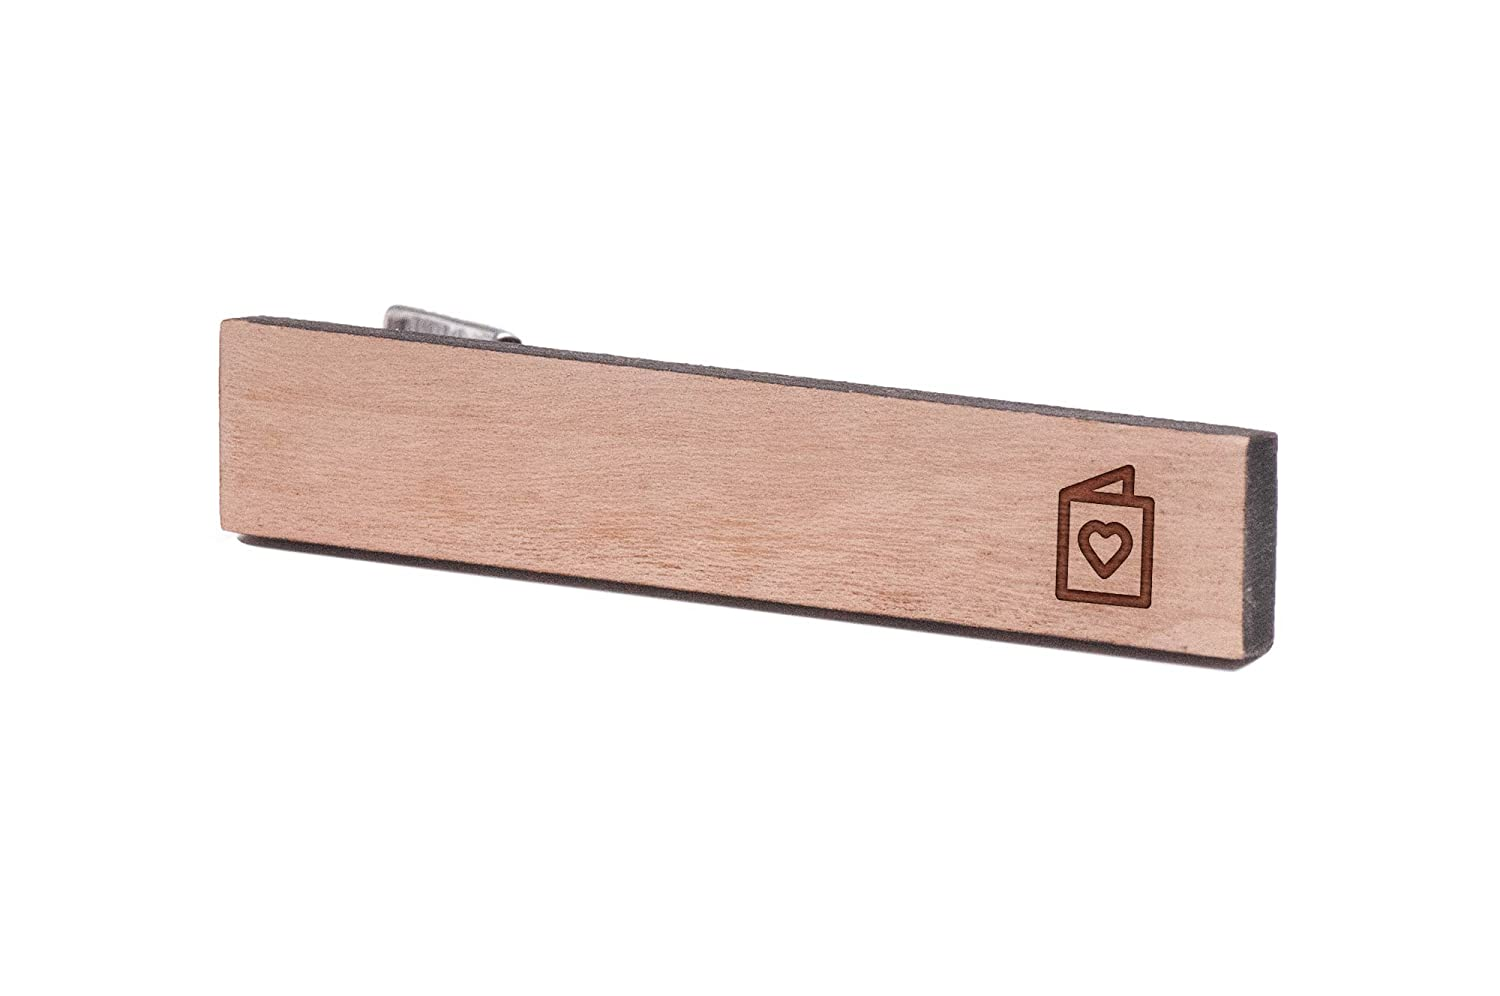 Wooden Accessories Company Wooden Tie Clips with Laser Engraved Greeting Card Design Cherry Wood Tie Bar Engraved in The USA